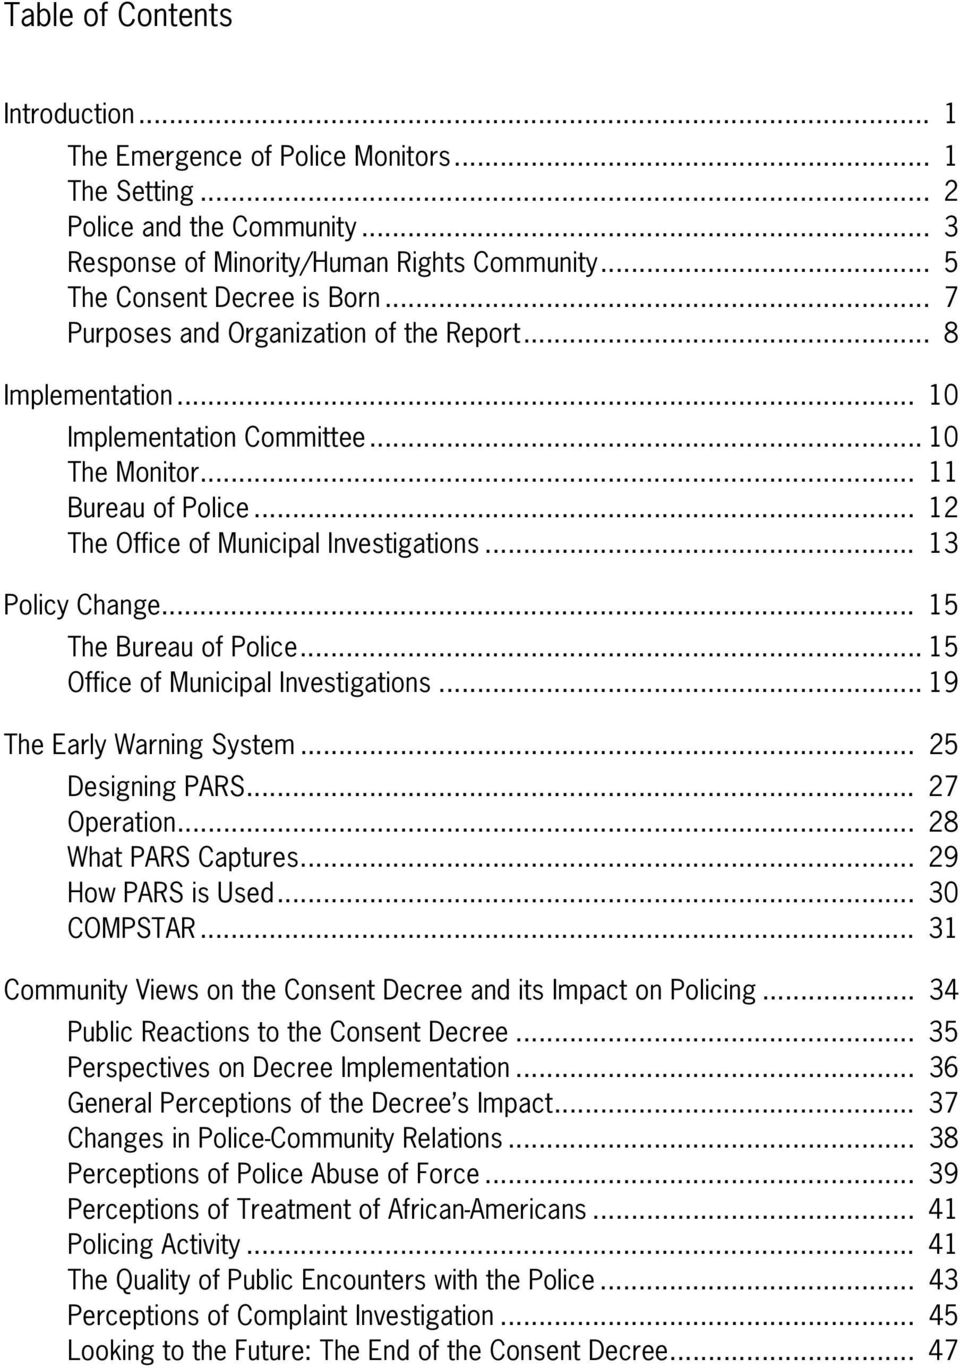 .. 15 The Bureau of Police... 15 Office of Municipal Investigations... 19 The Early Warning System... 25 Designing PARS... 27 Operation... 28 What PARS Captures... 29 How PARS is Used... 30 COMPSTAR.